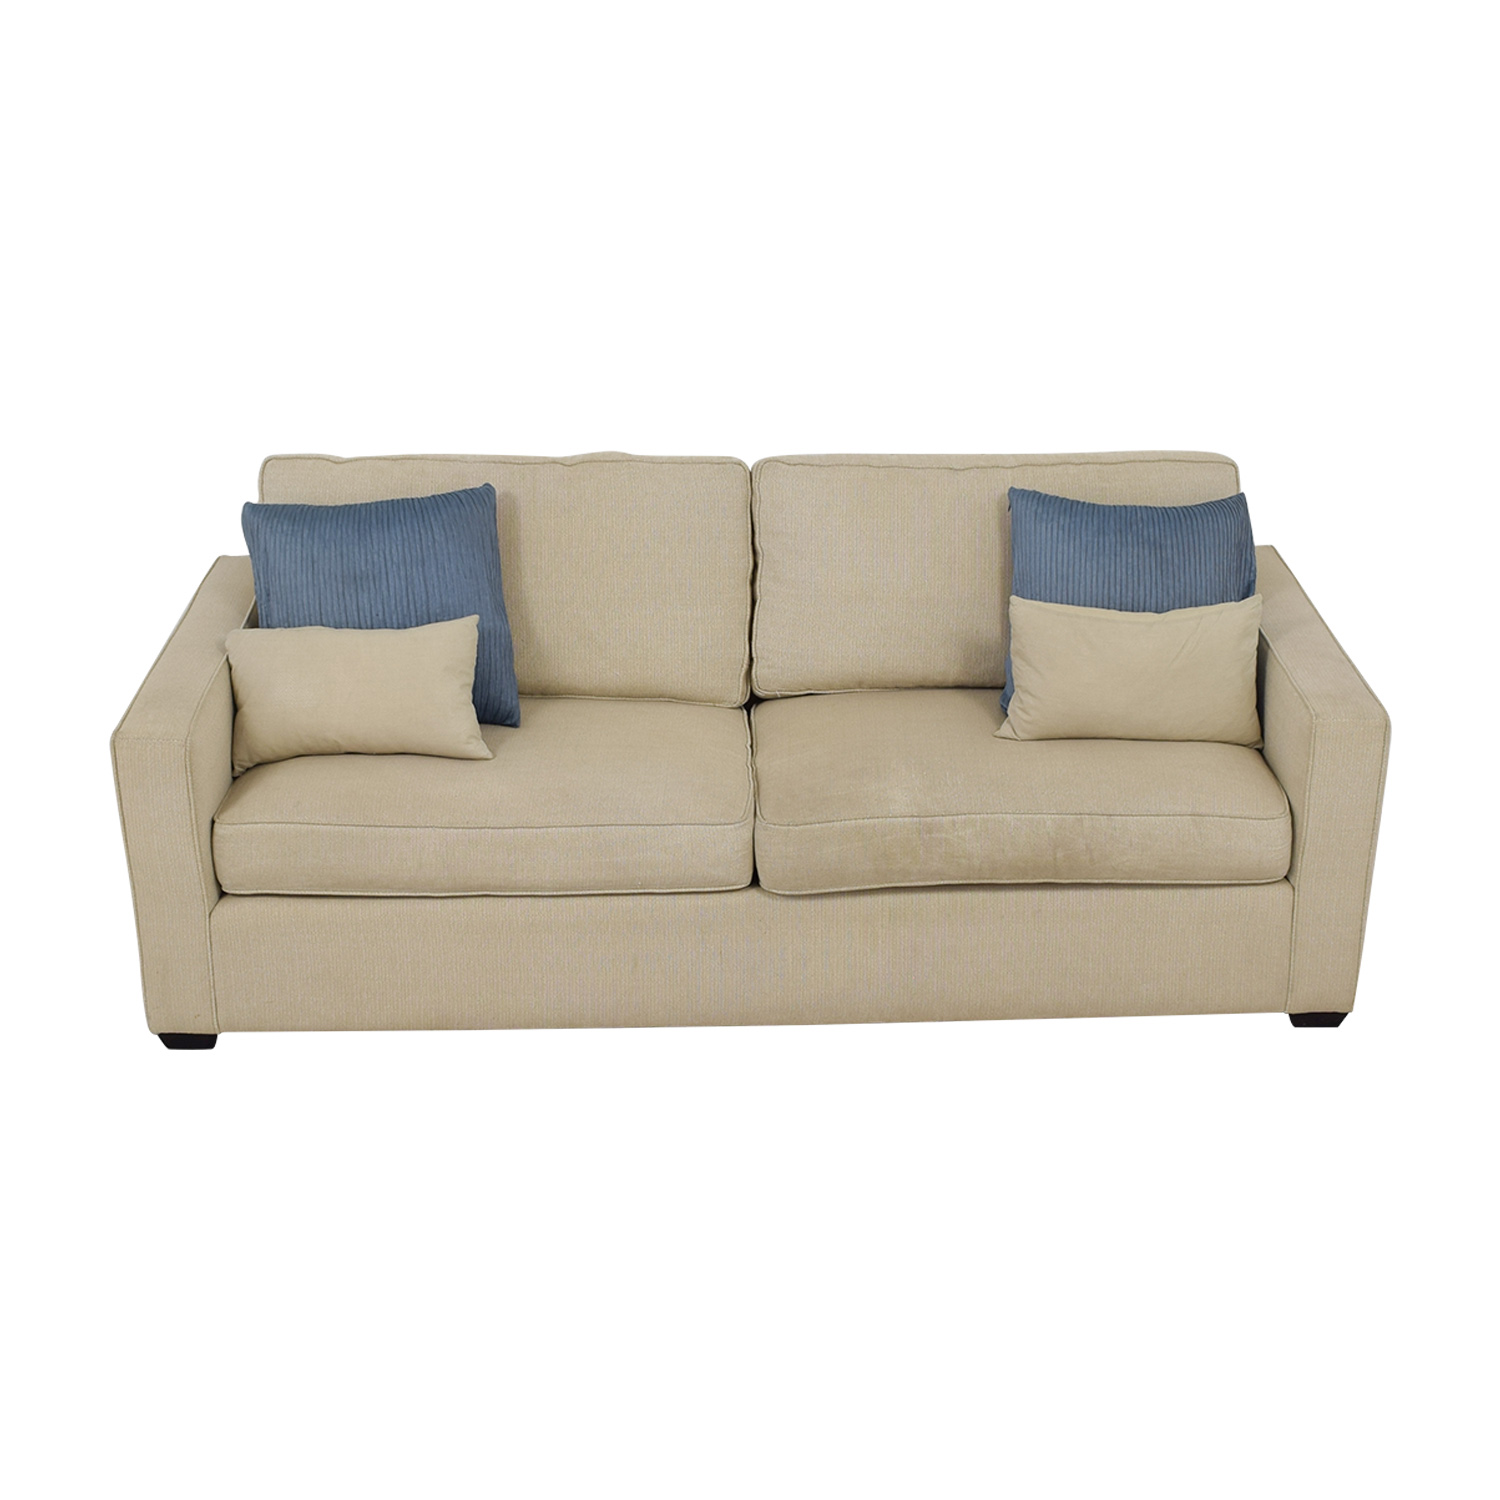 room and board sectional sofa bed sloane west elm dublin cheap review home co